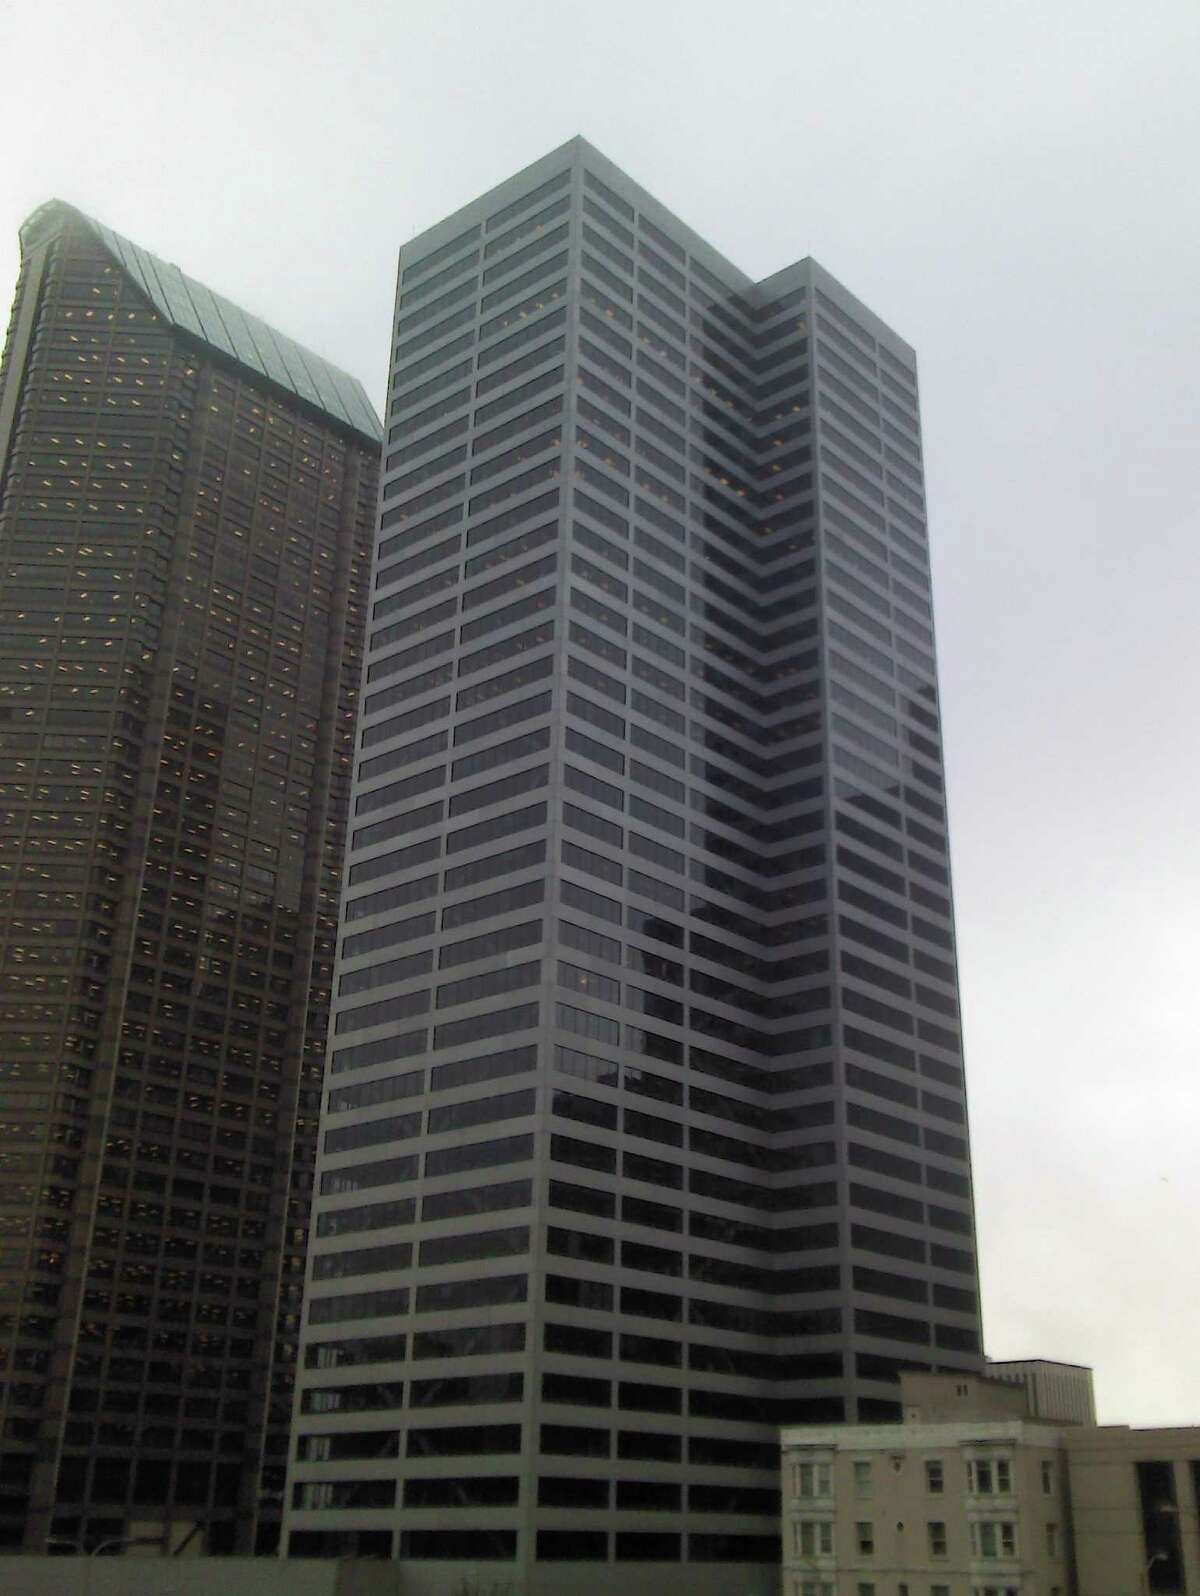 9. Bank of America Fifth Avenue Plaza (1981): 42 stories, 543 feet.